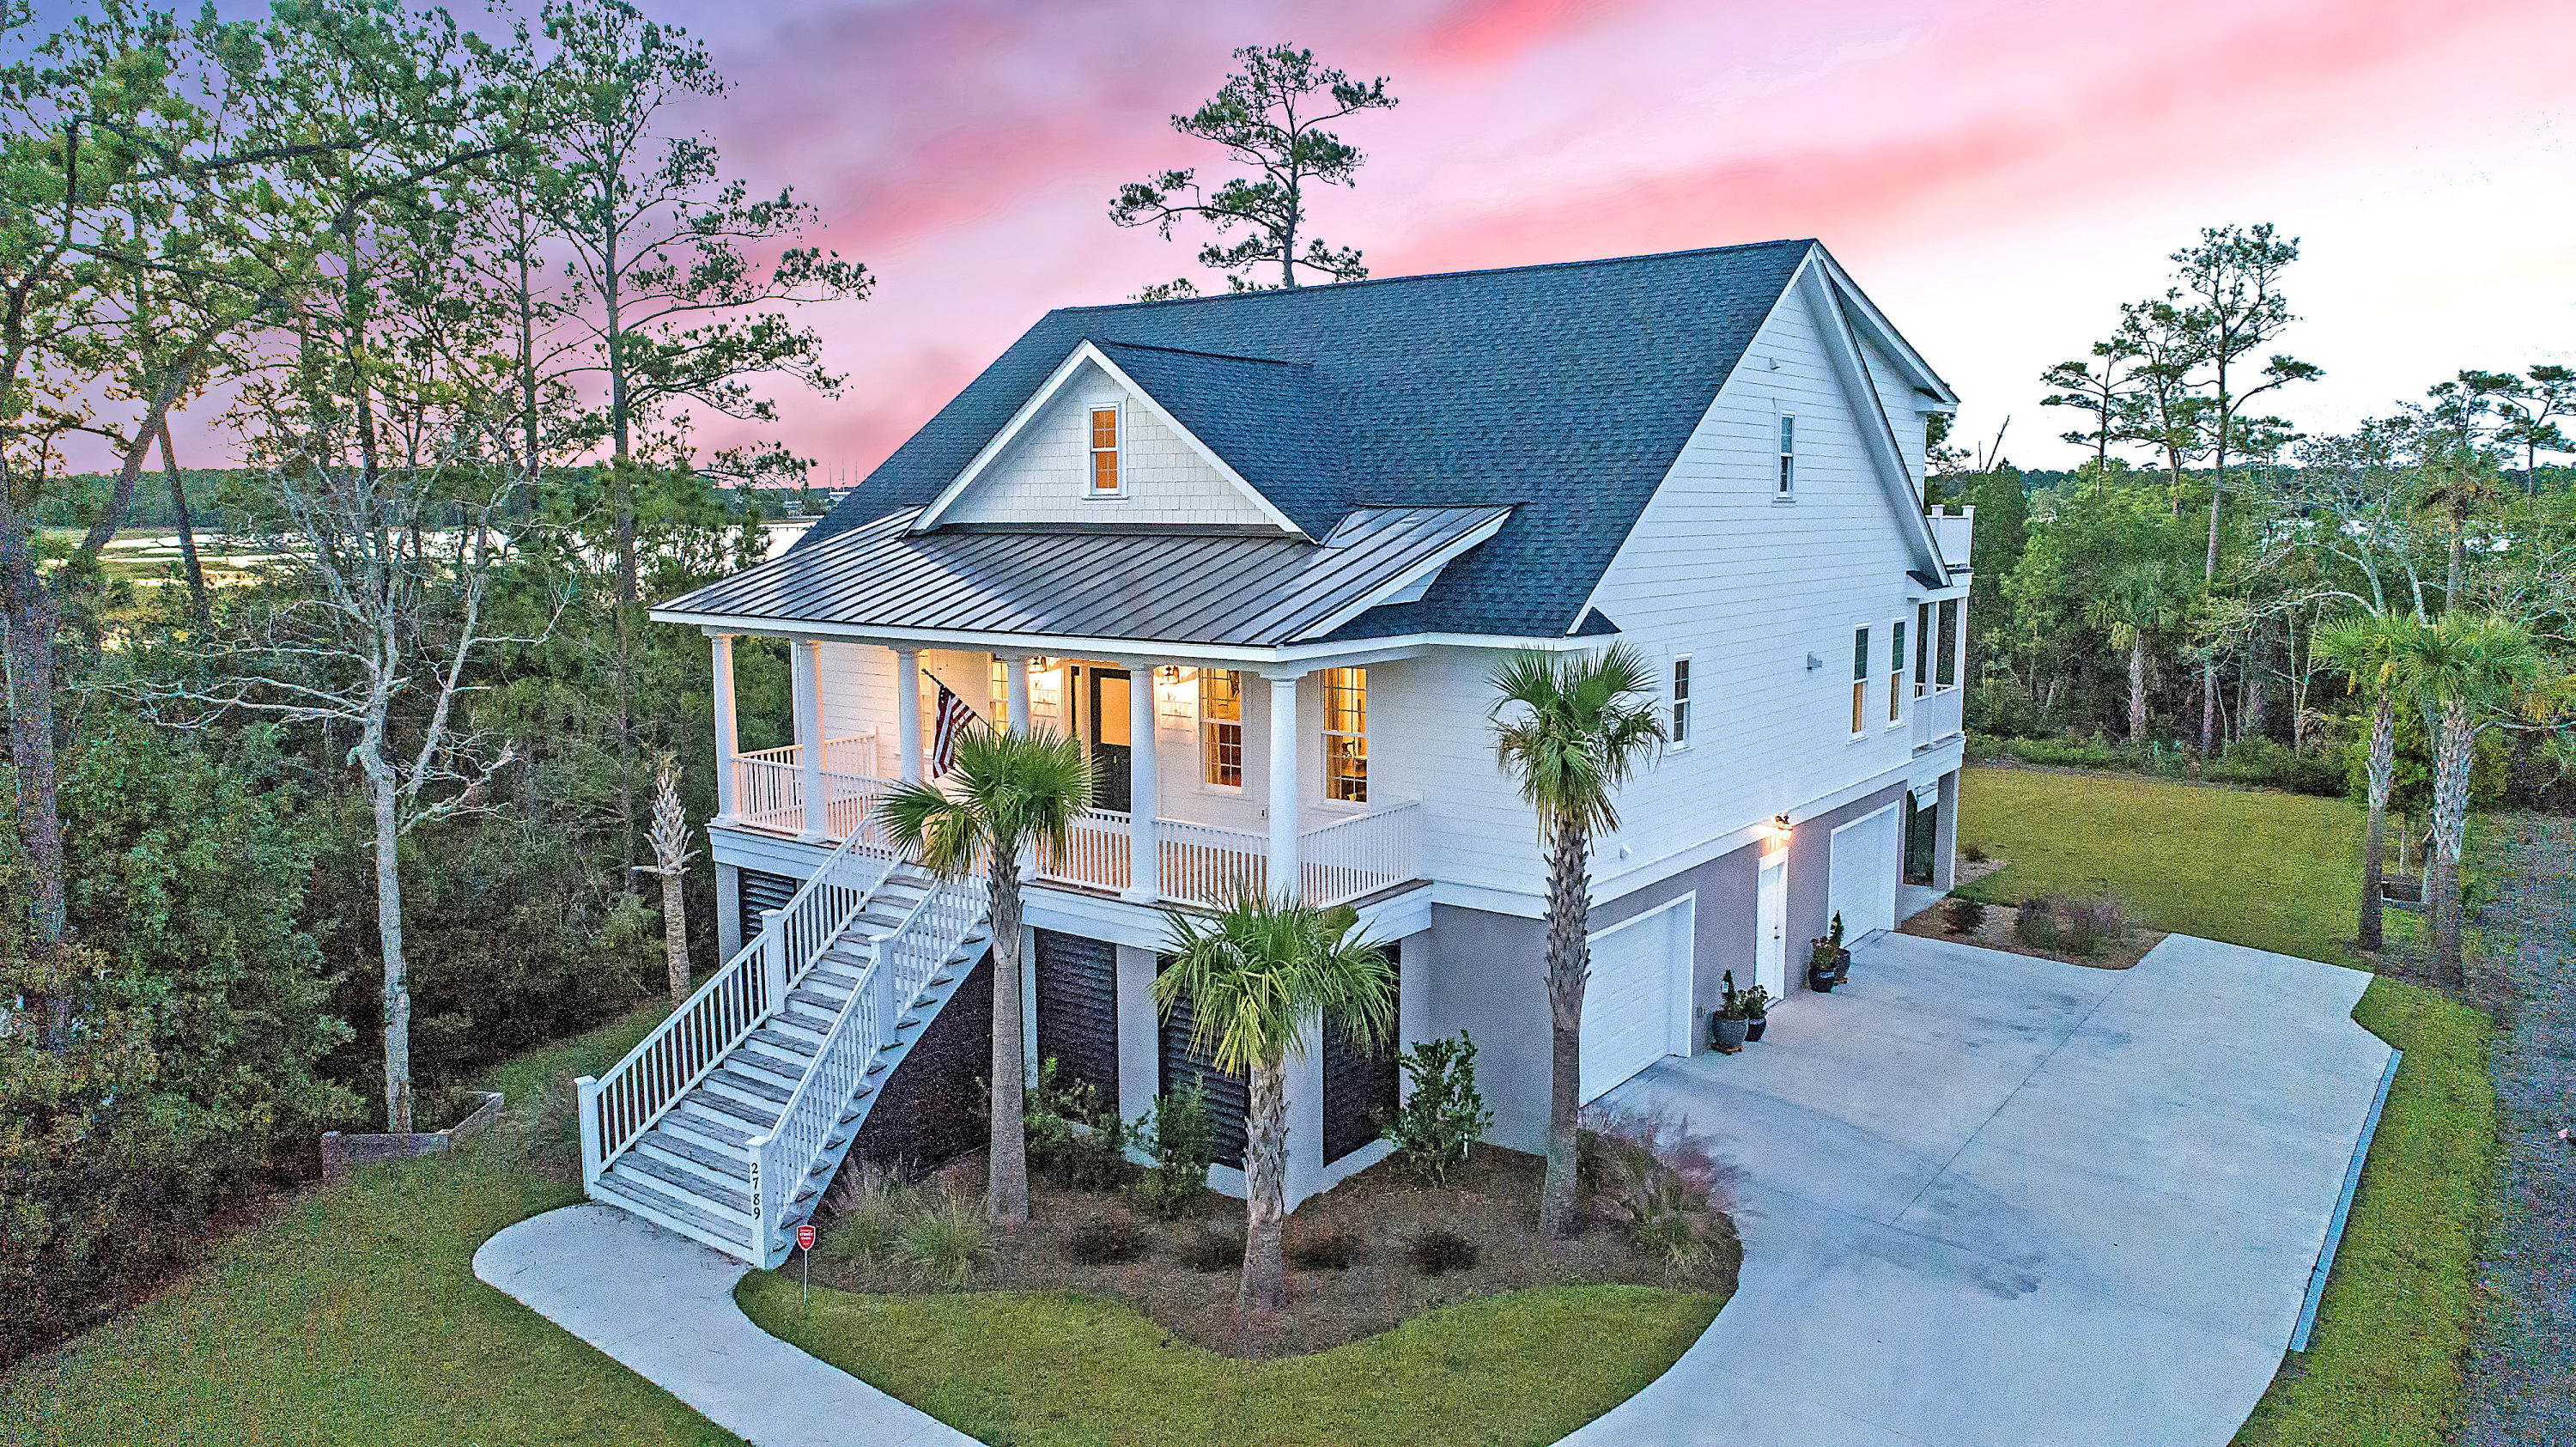 Dunes West Homes For Sale - 2789 Oak Manor, Mount Pleasant, SC - 12